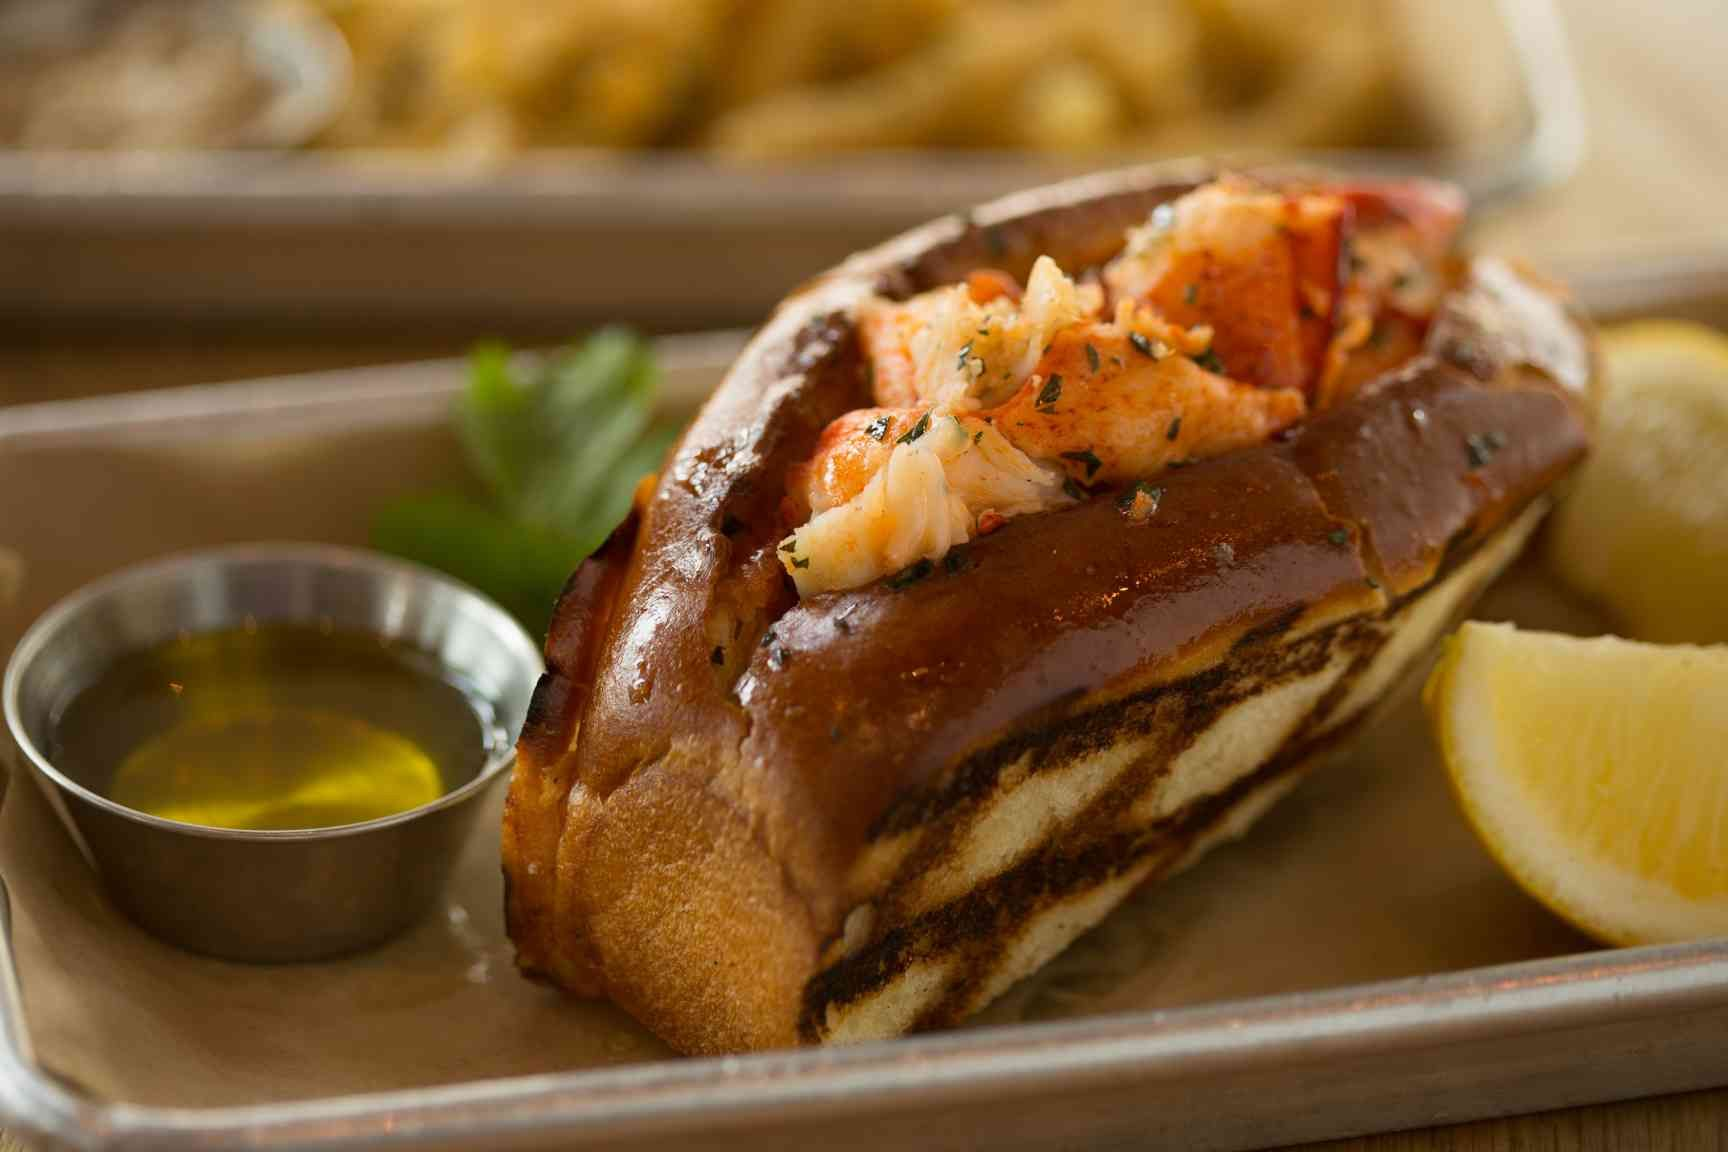 Cheap Fish Take Out Restaurants Near Me This Seafood Recipes Recipes Food Foodrecipe Food Recipes Seafood Restaurant